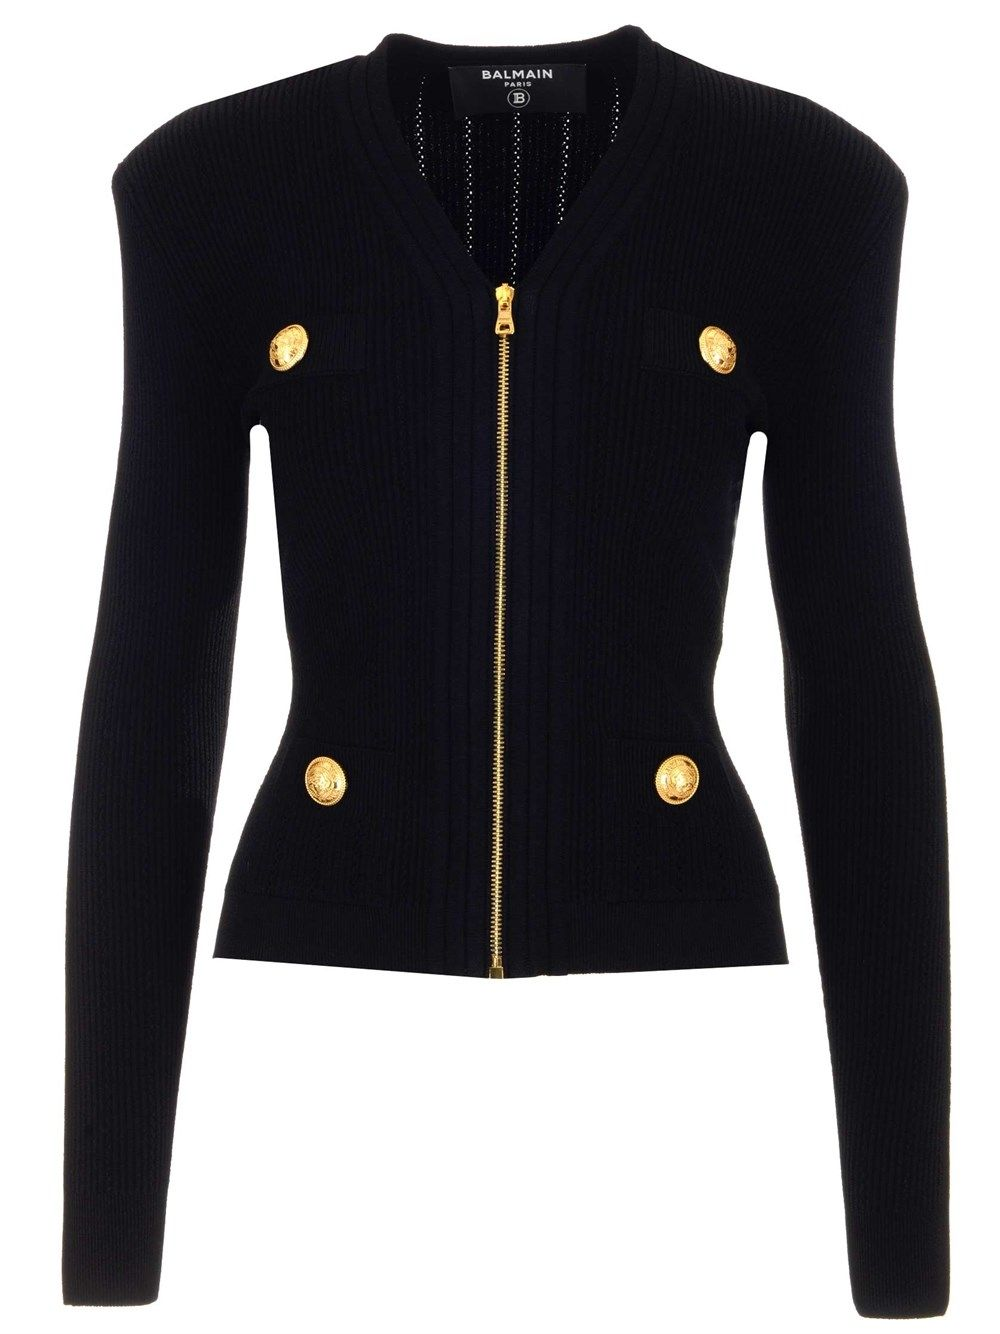 Balmain BALMAIN WOMEN'S BLACK OTHER MATERIALS JACKET